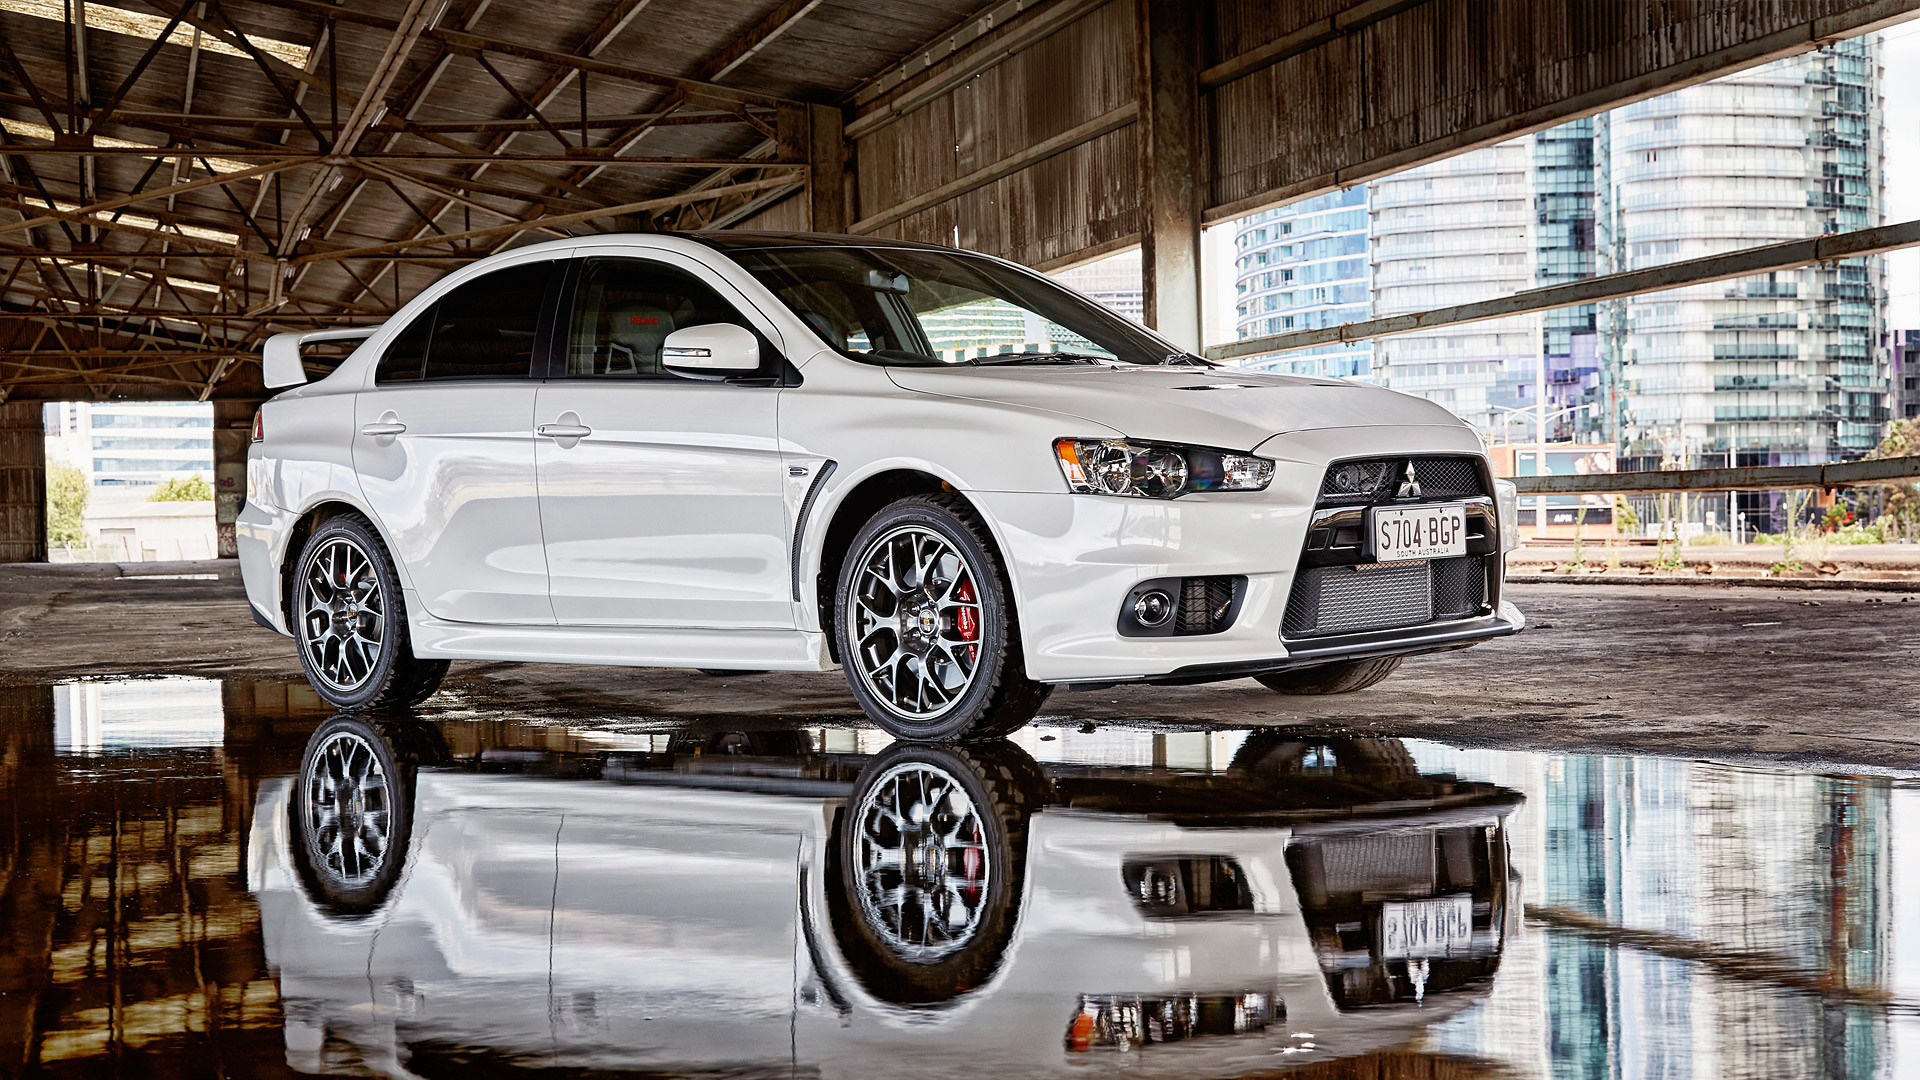 1920x1080 2015 Mitsubishi Lancer EVO X Final Edition picture.